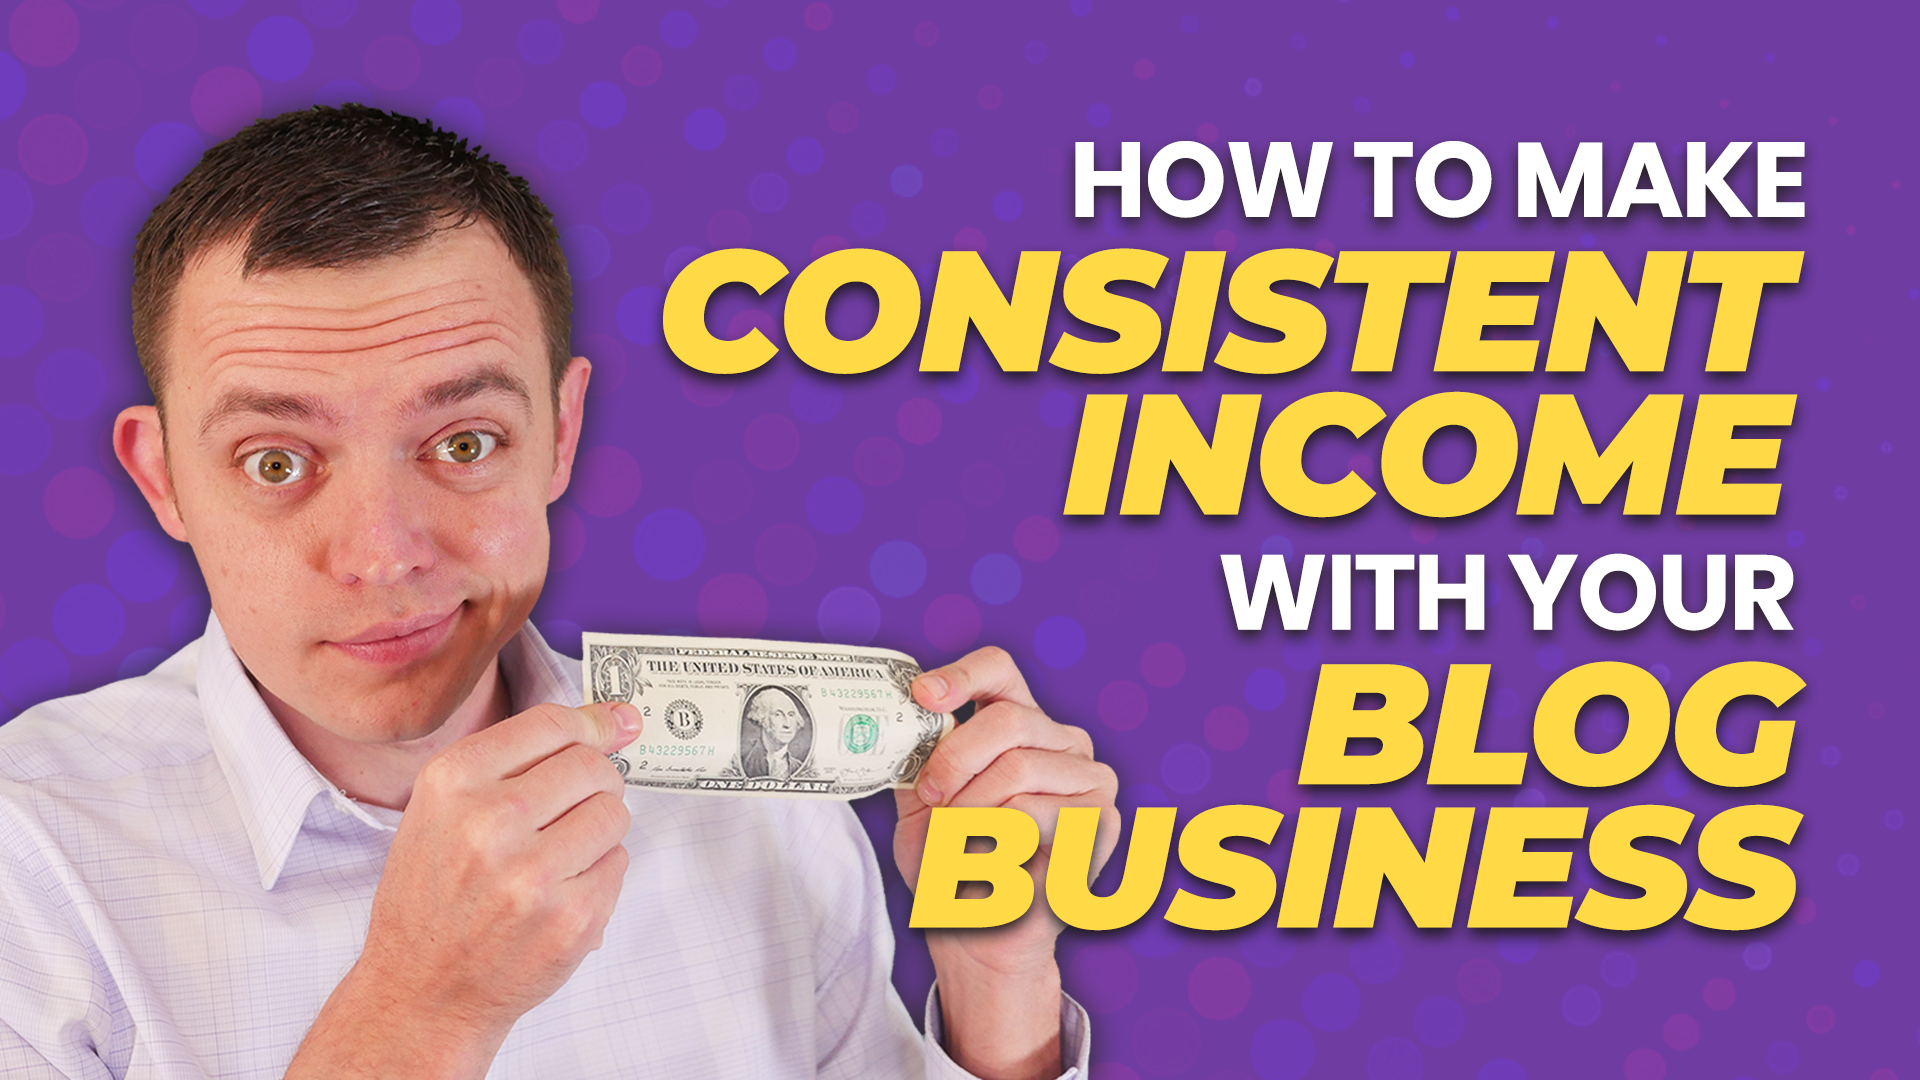 How to Make Consistent Income with Your Blog Business